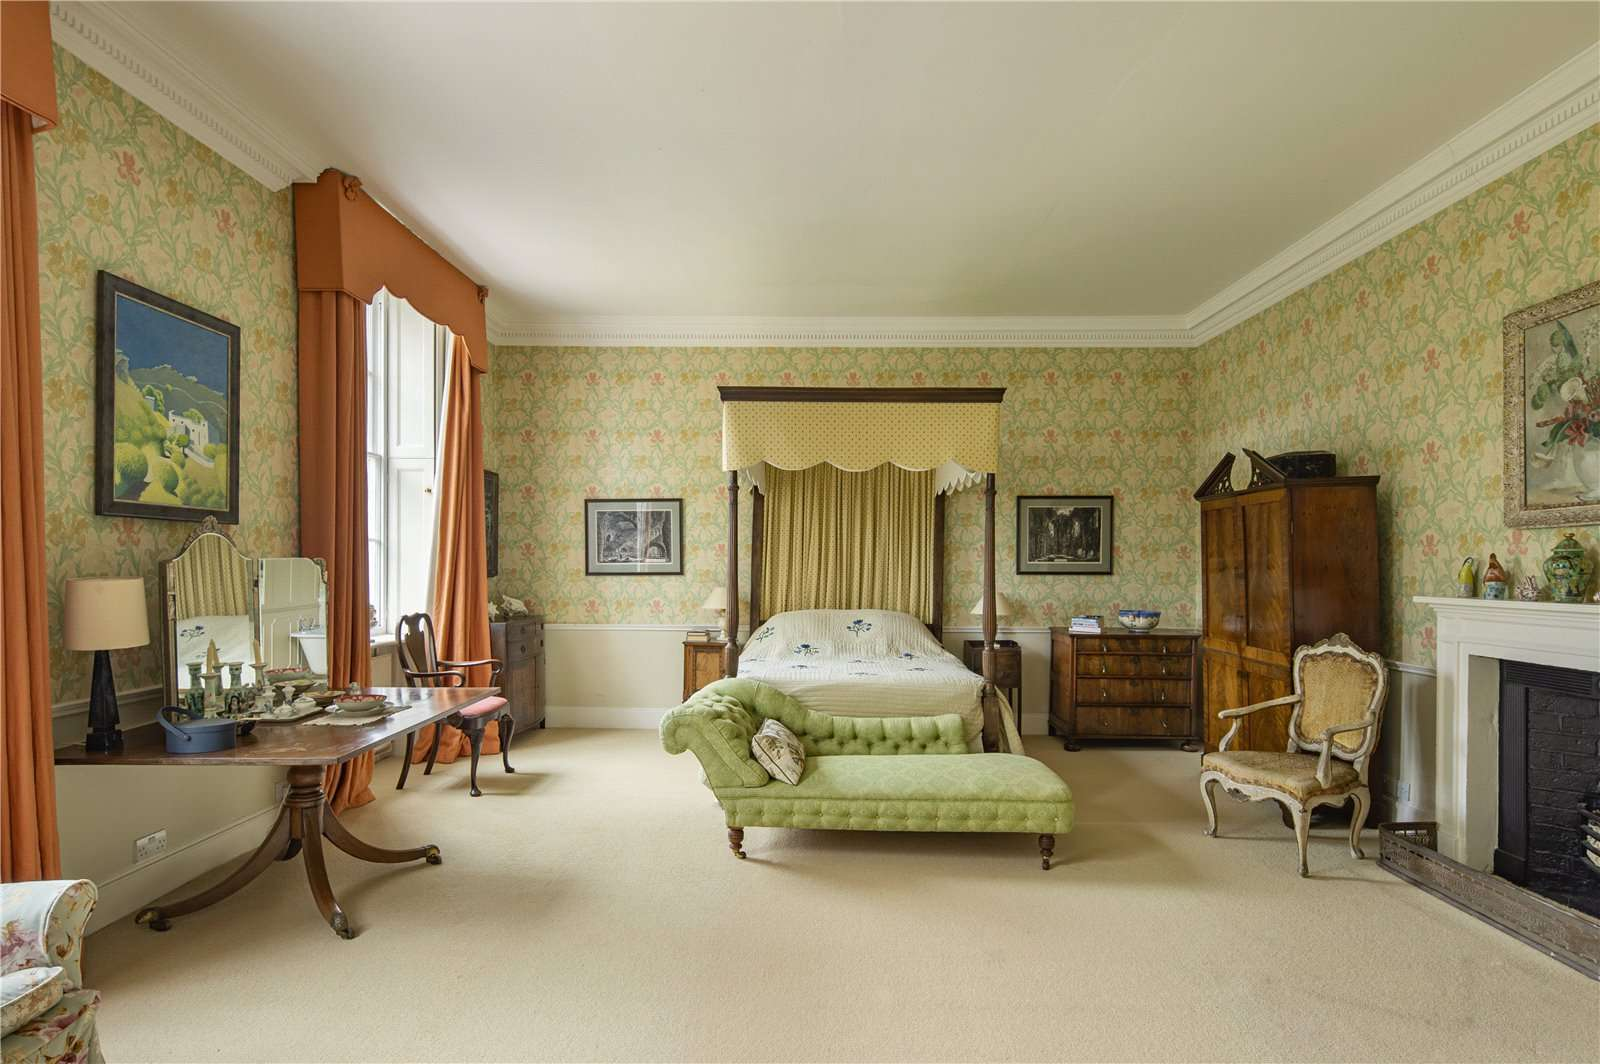 Beauforest House, Wallingford - Image Gallery 12 - Bedroom